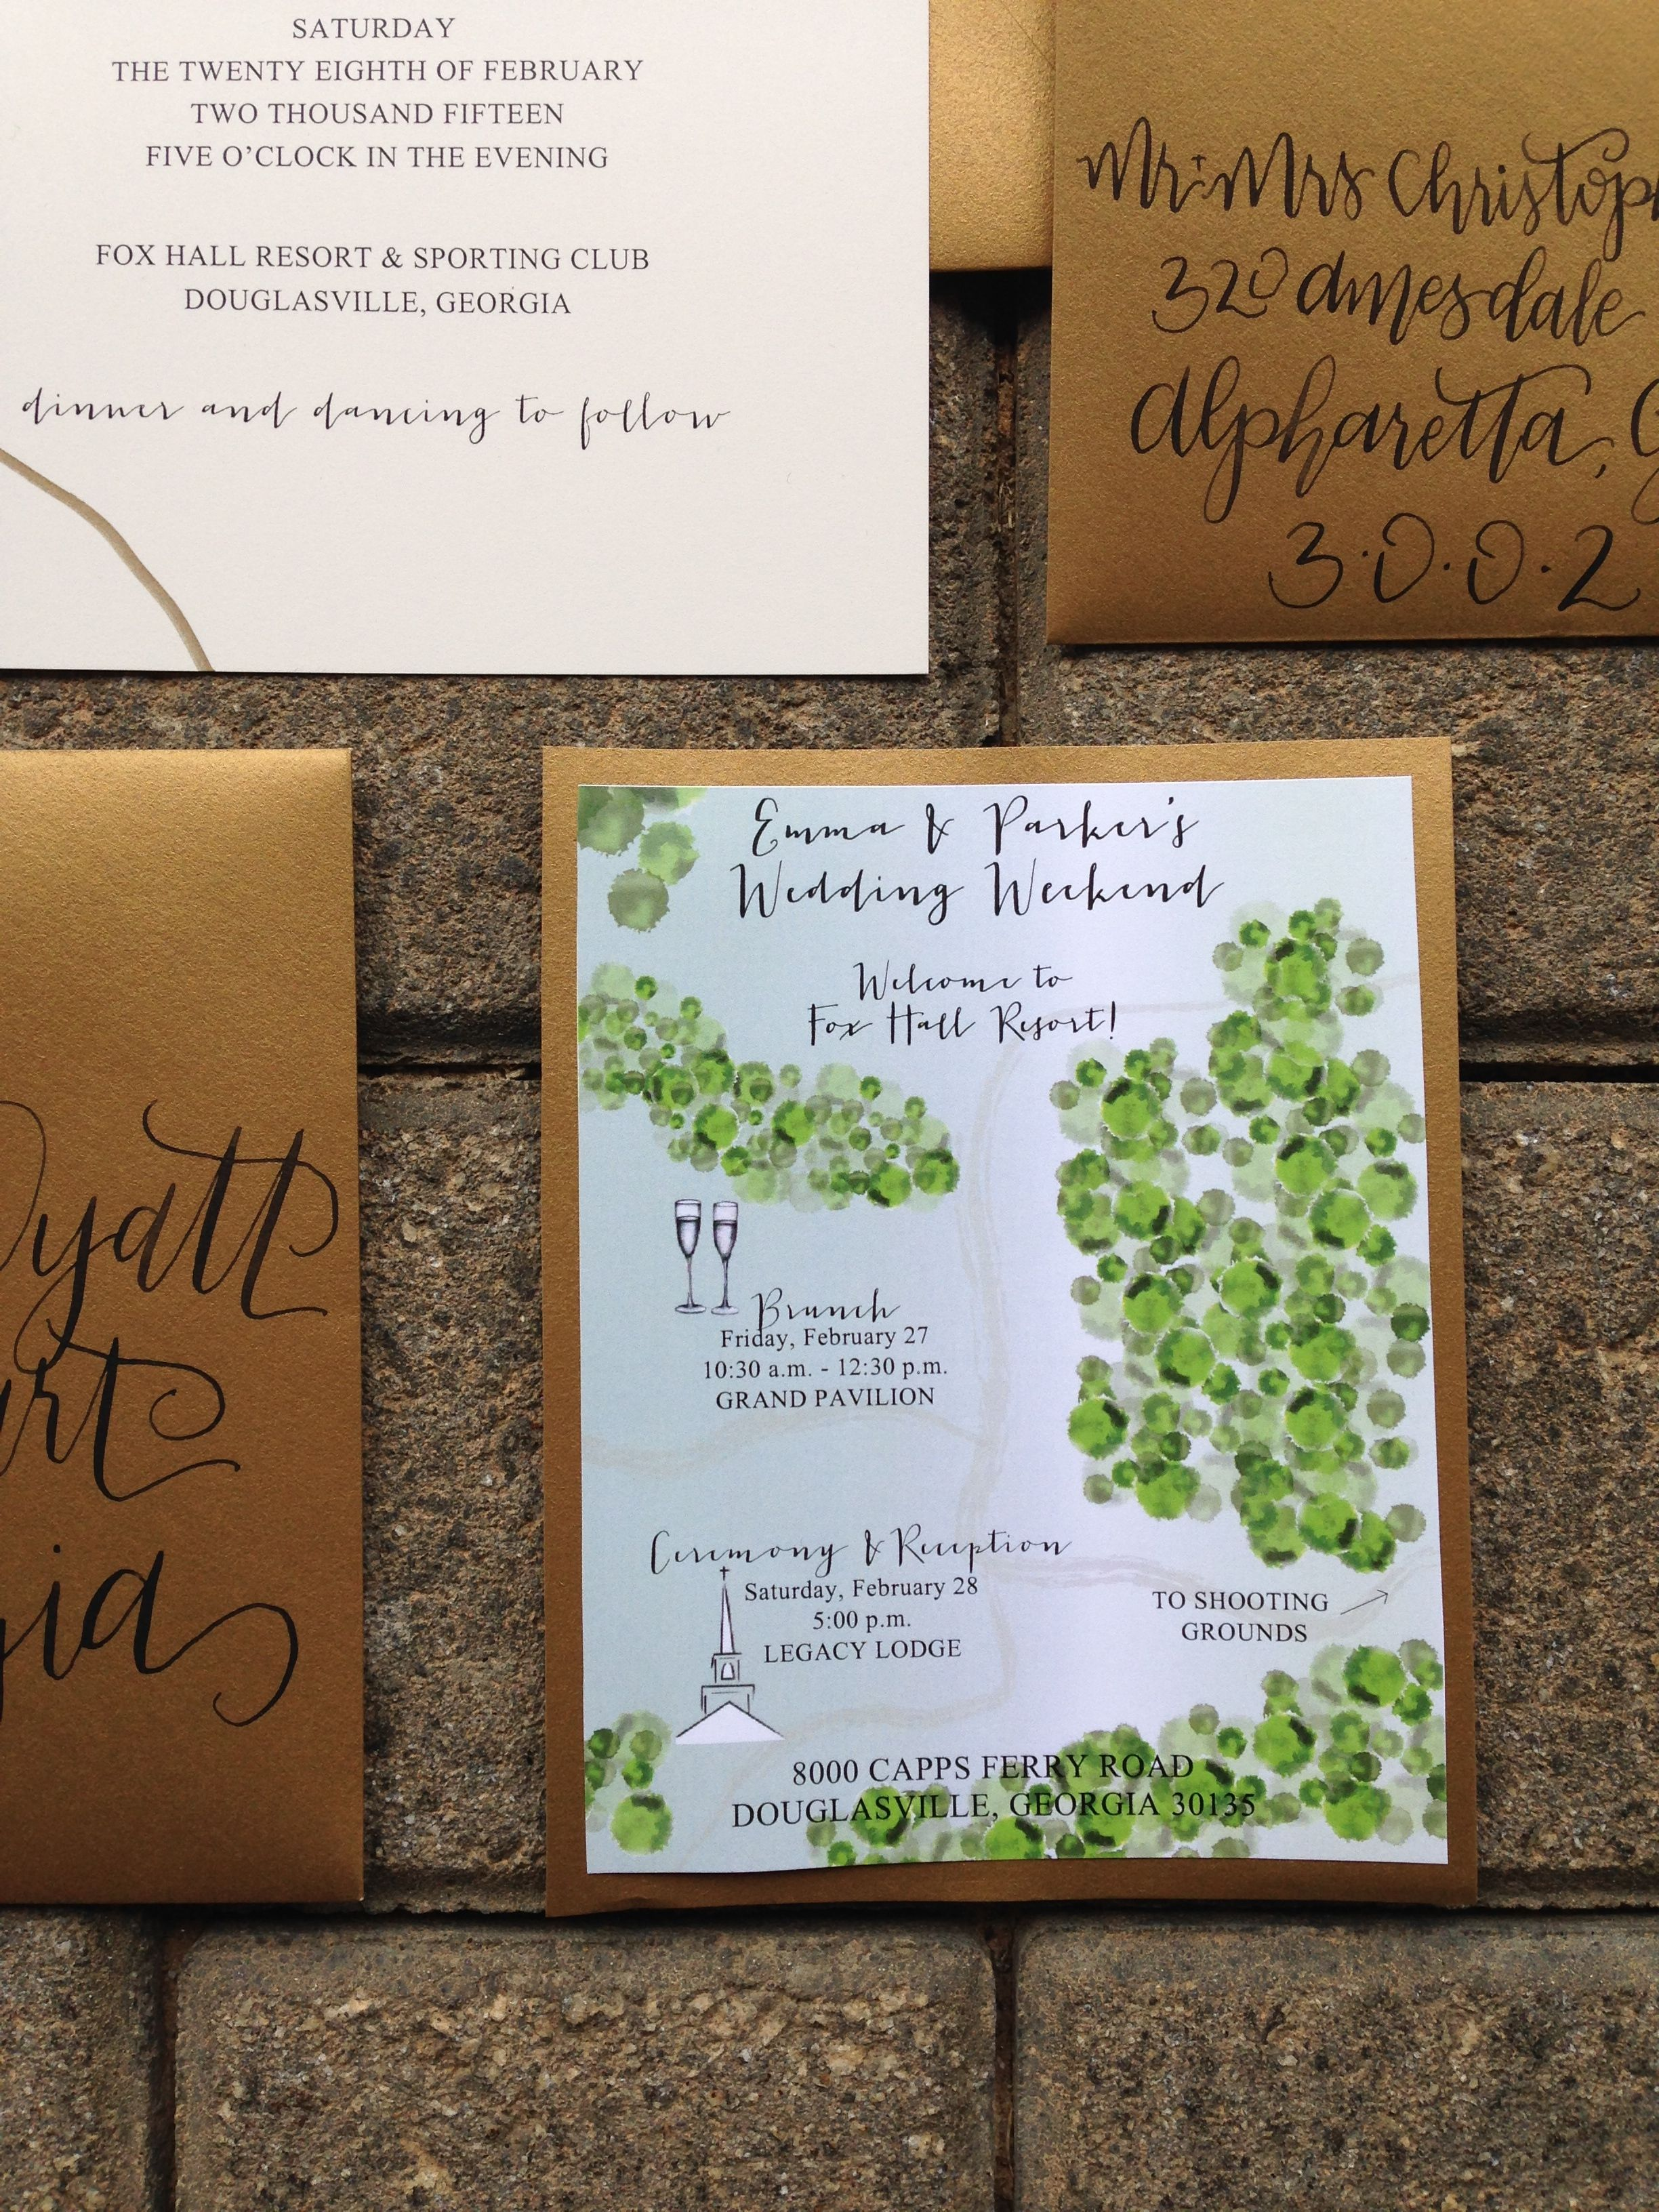 Wedding Invitation Map And Itinerary   Atlanta Wedding, Foxhall Resort